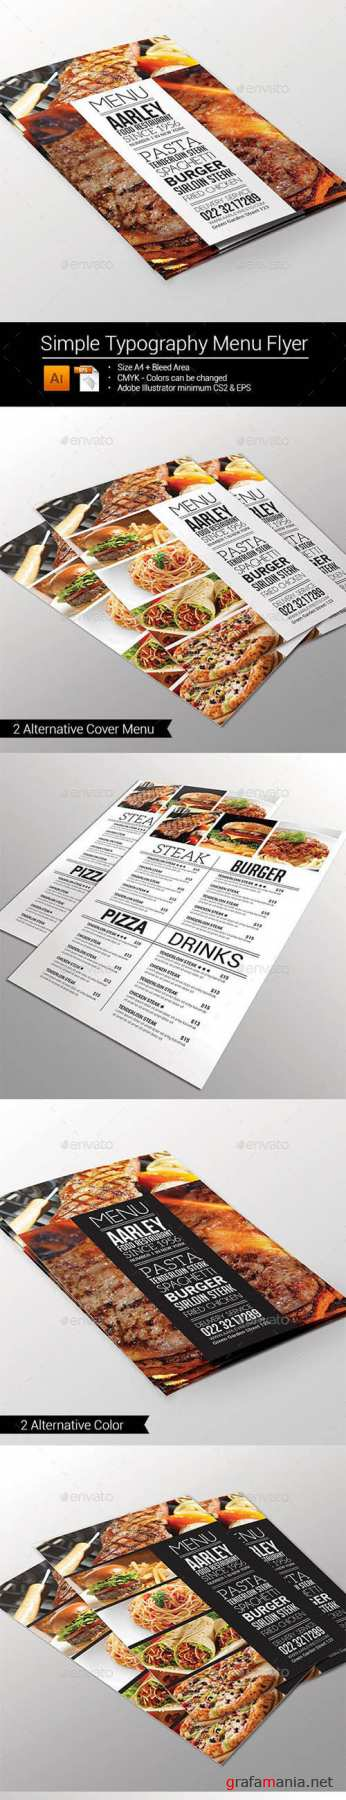 GR - Simple Typography Menu Flyer 10013533